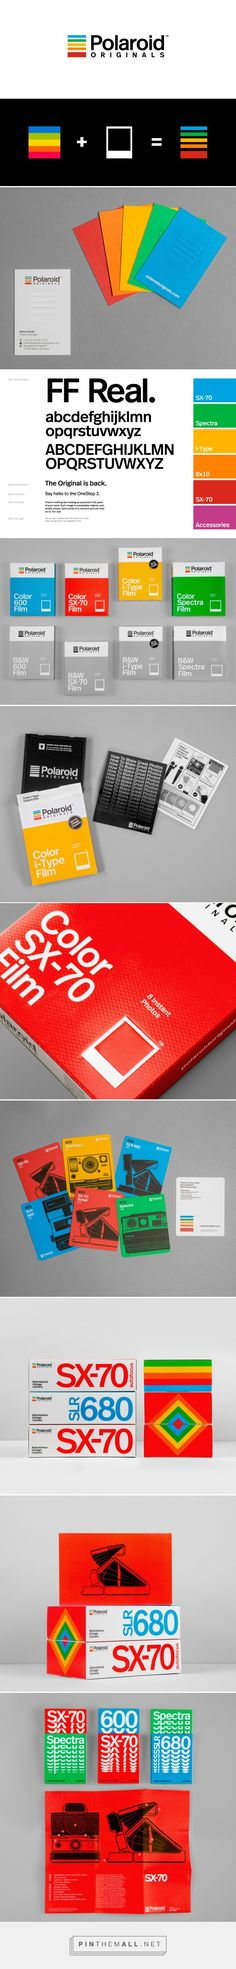 Brand New: New Logo, Identity, and Packaging for Polaroid Originals done In-house... - a grouped images picture - Pin Them All